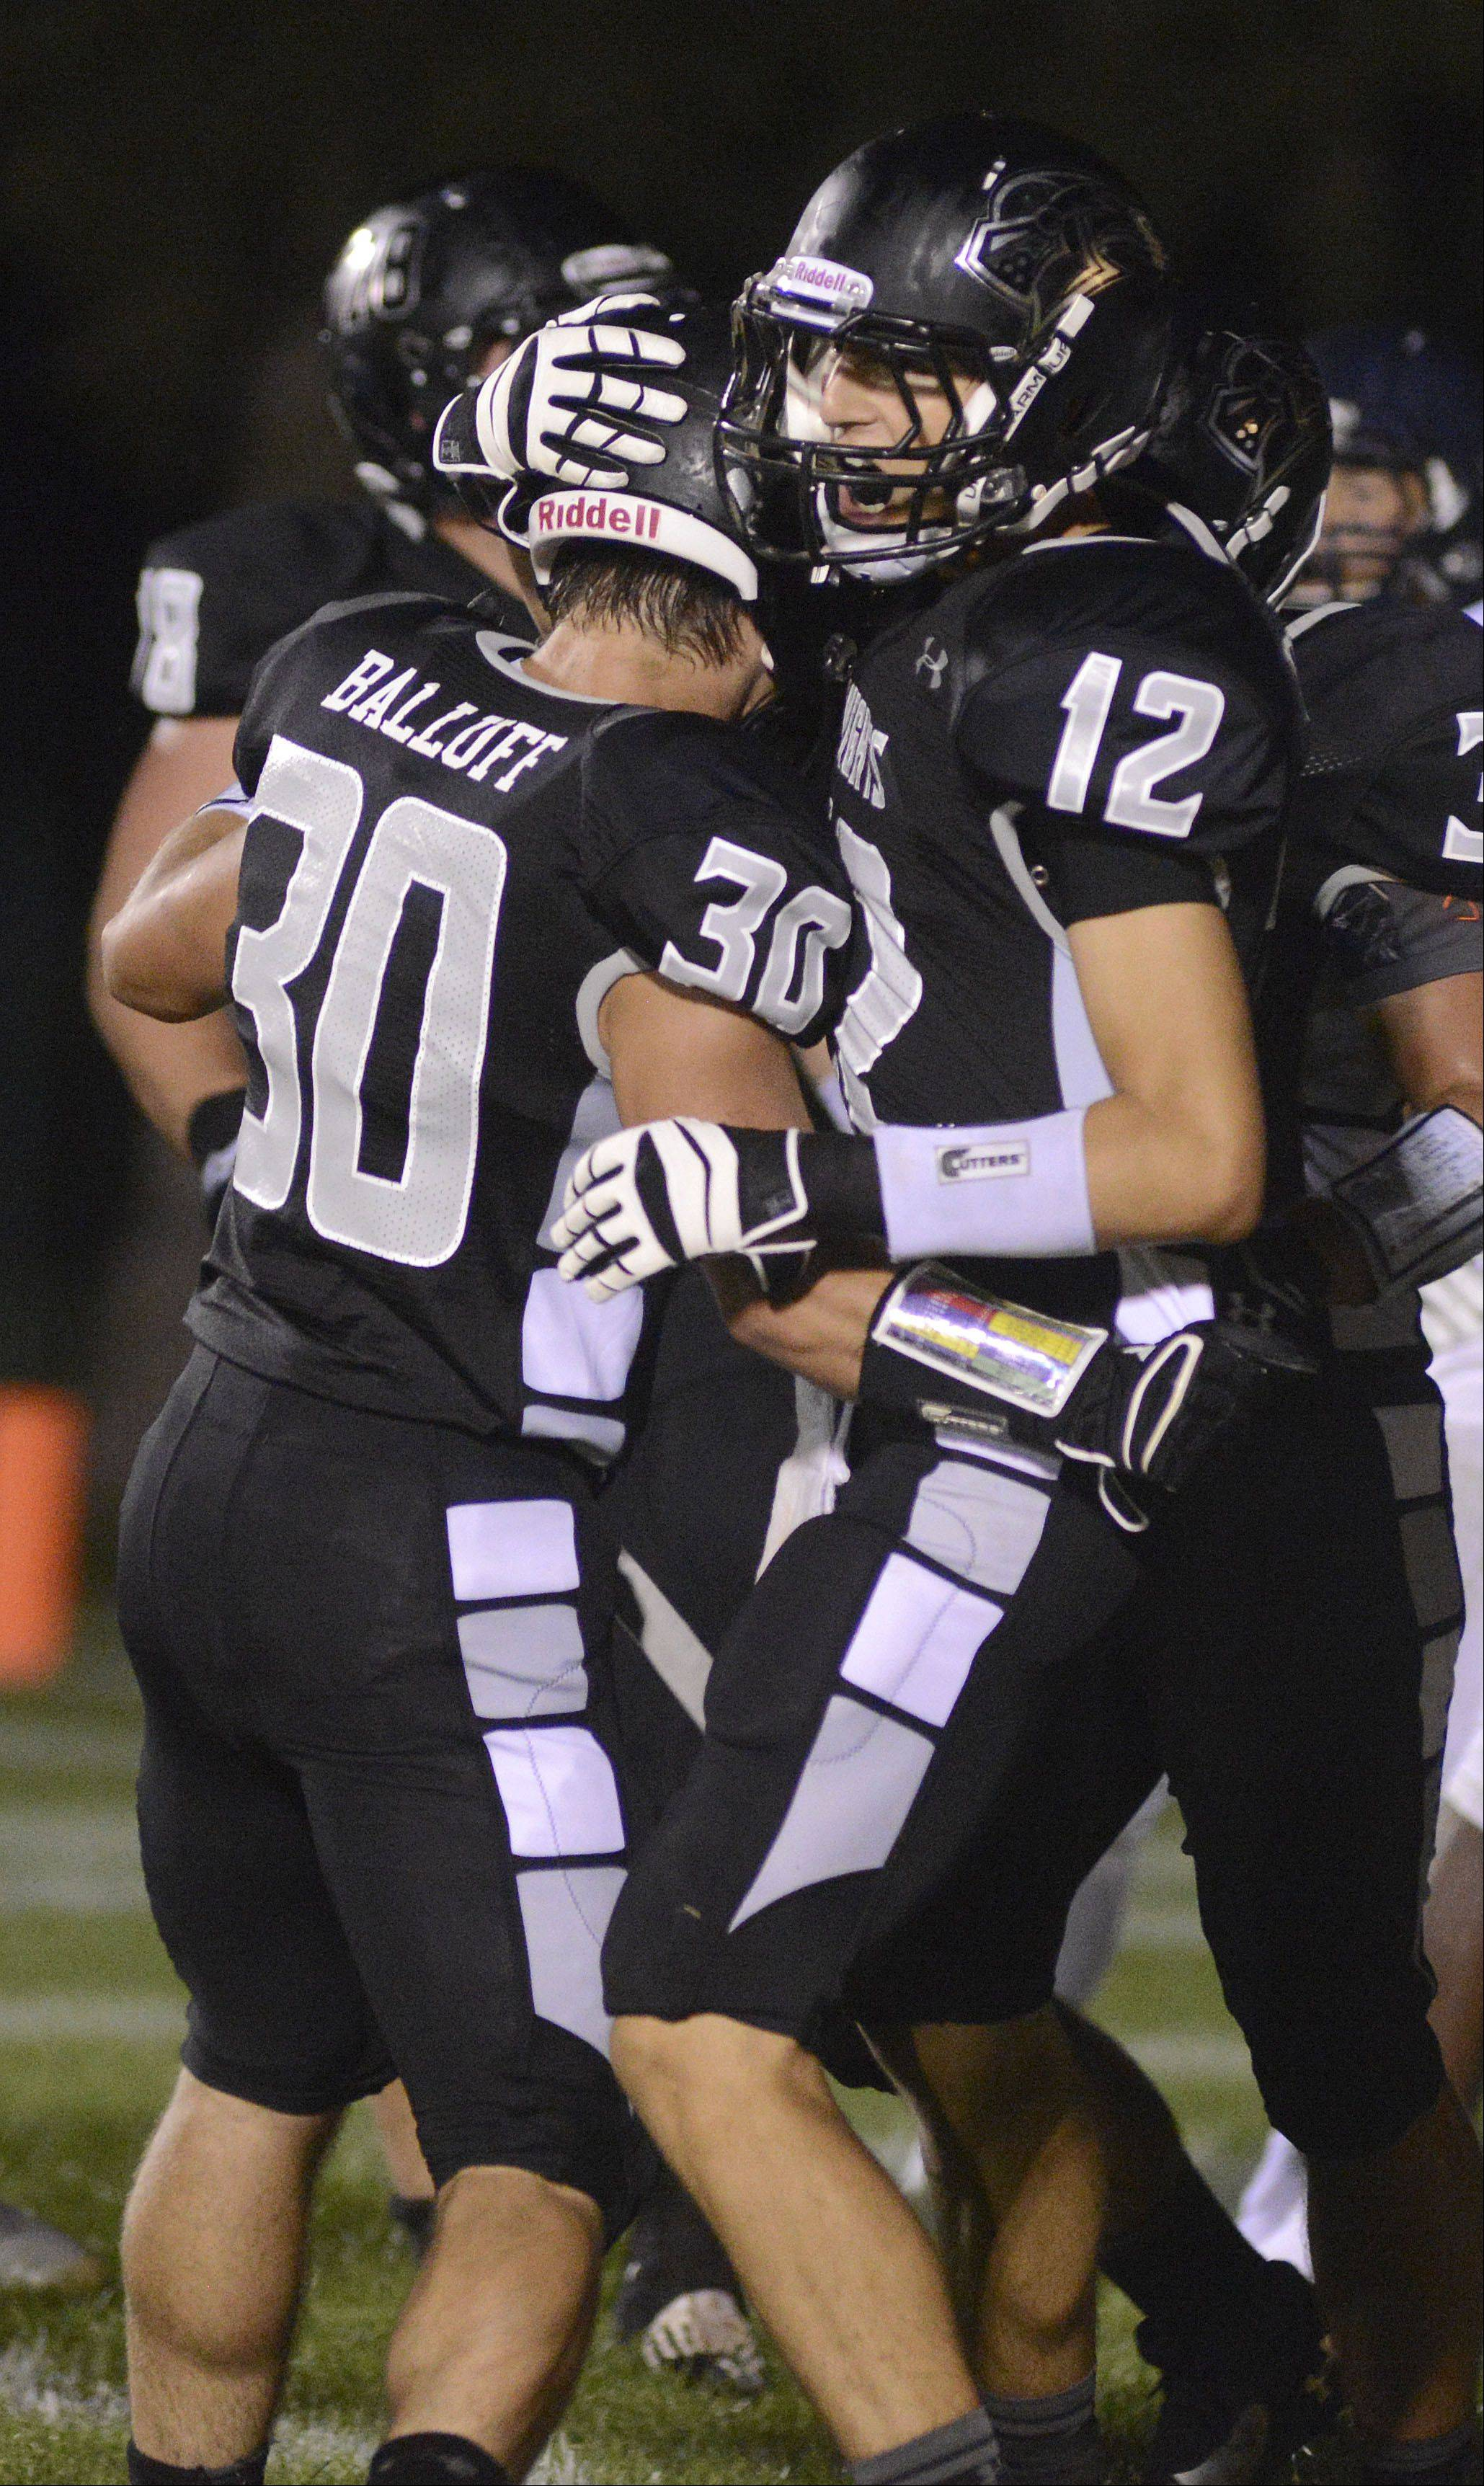 Kaneland's Jesse Balluff is congratulated on another touchdown by teammate Kevin Fuchs in the second quarter on Friday, September 6.